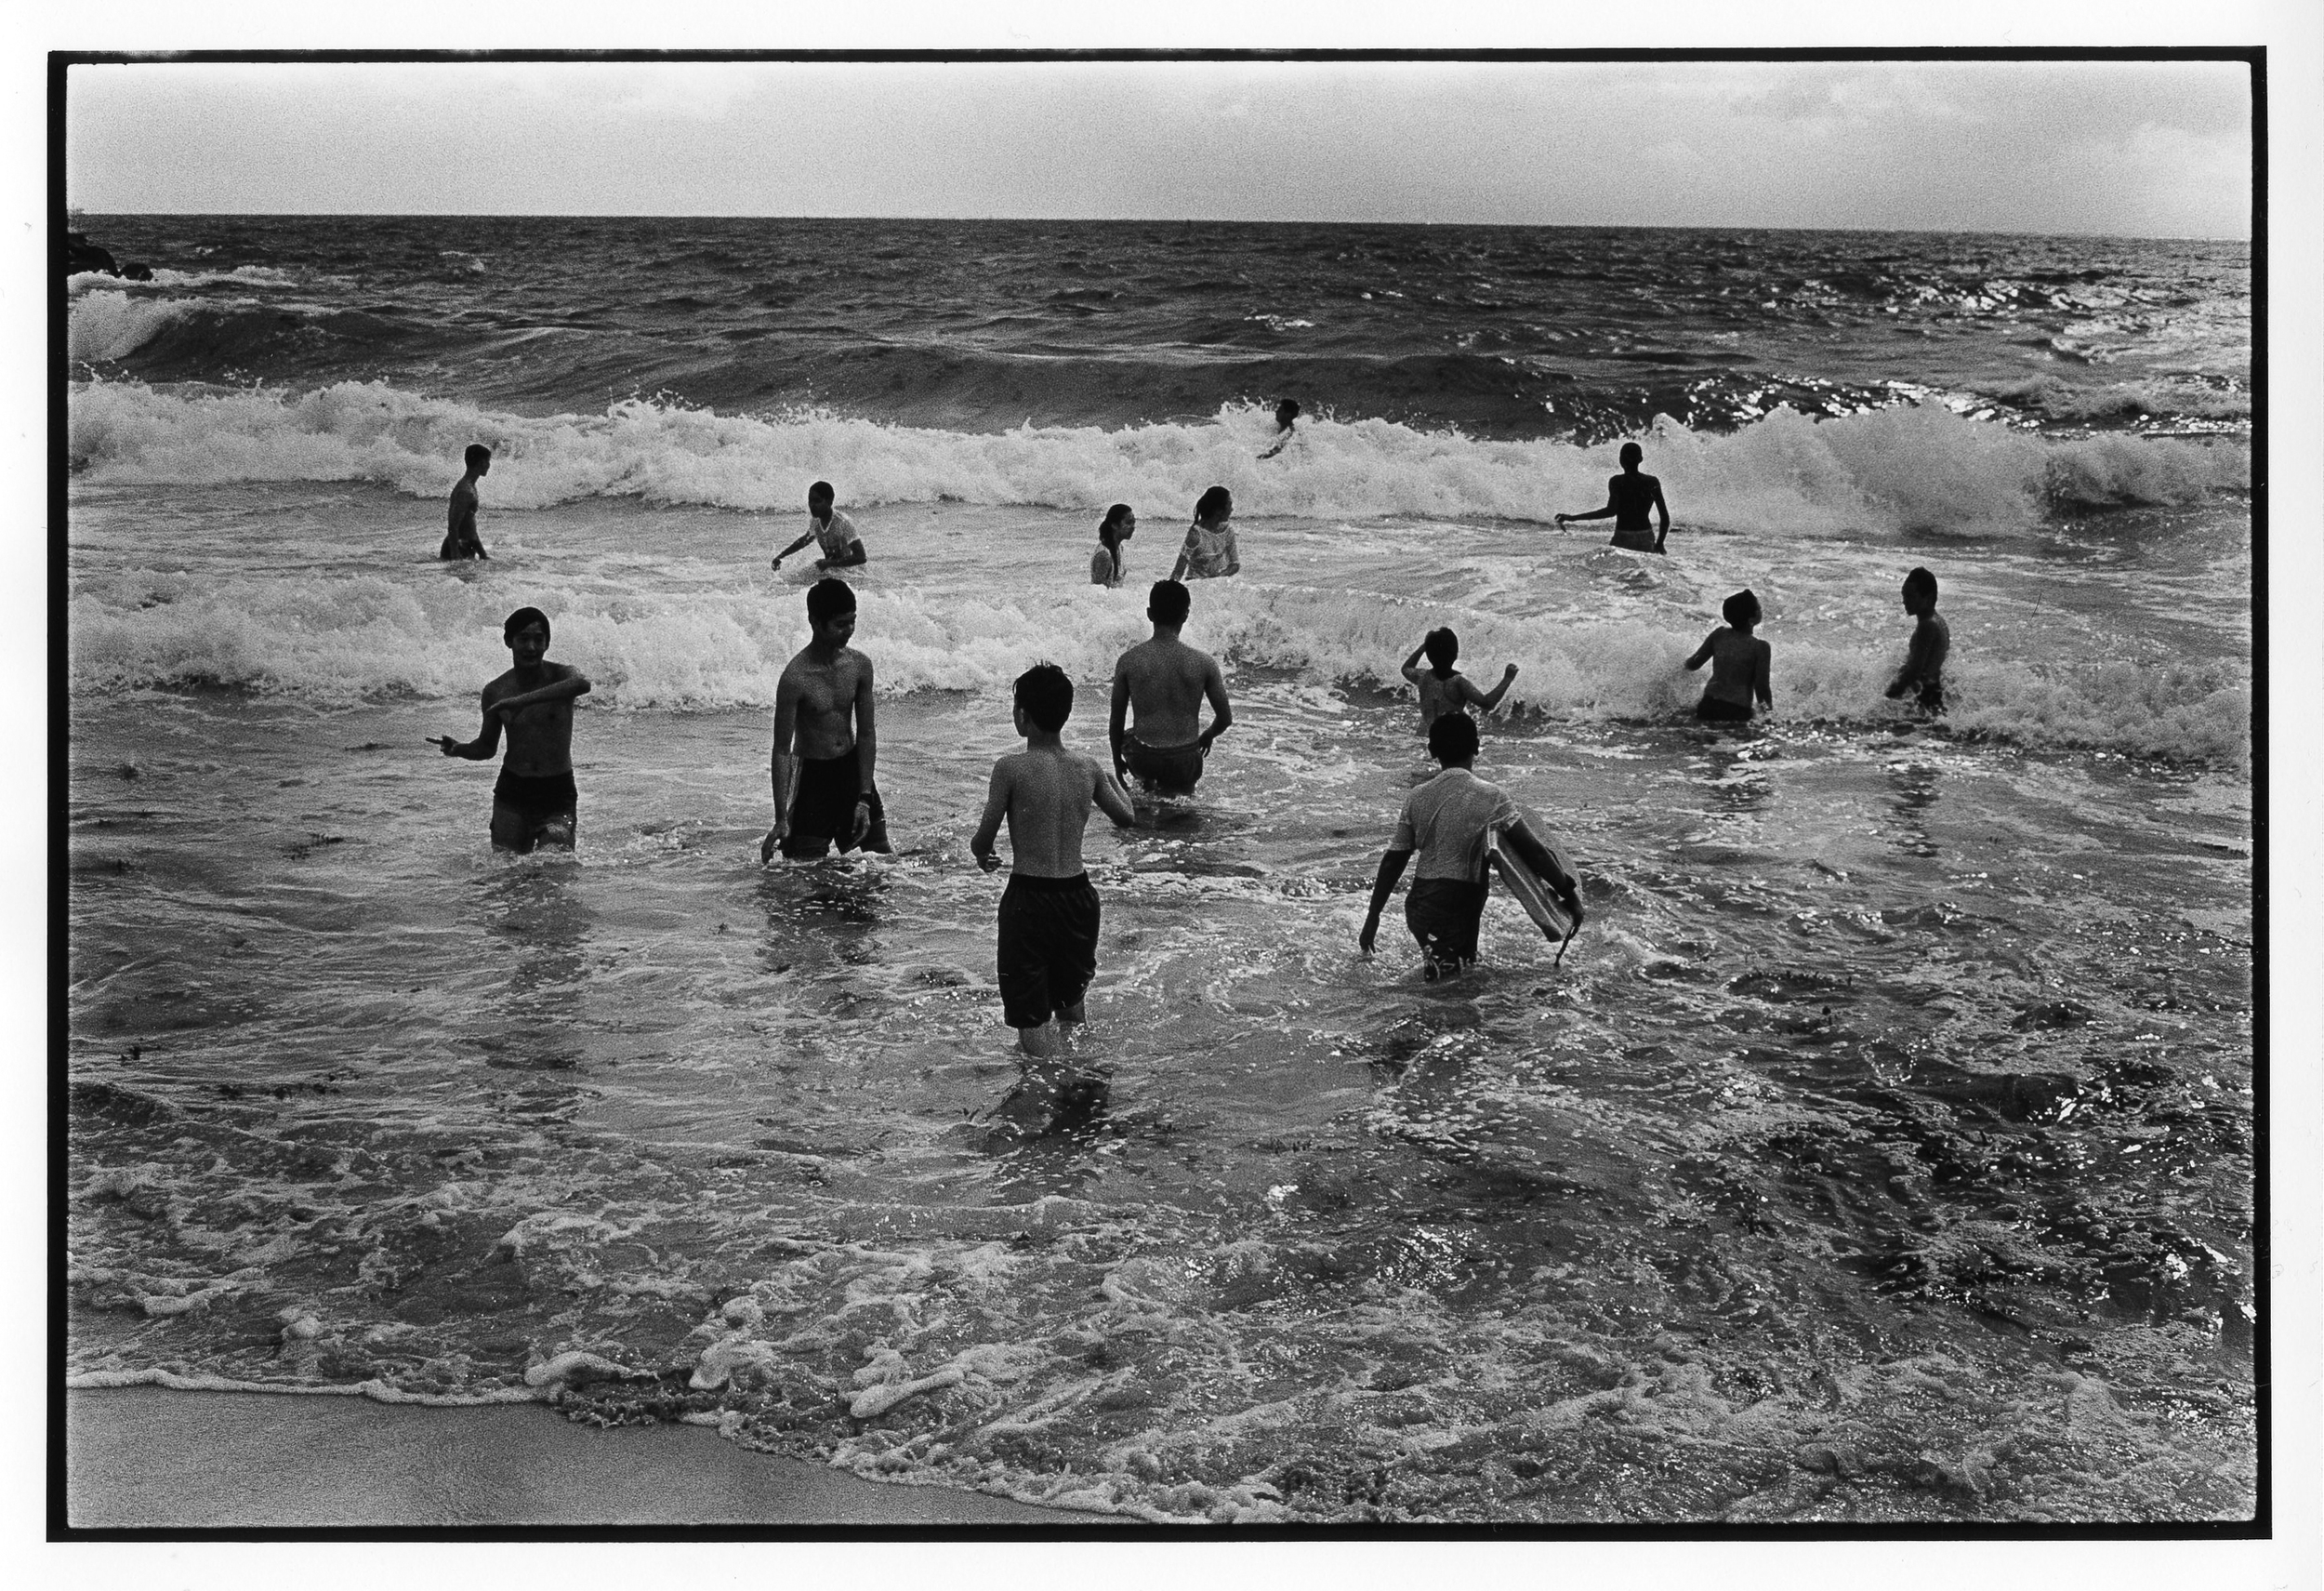 Cottesloe beach scene (1 of 1).jpg